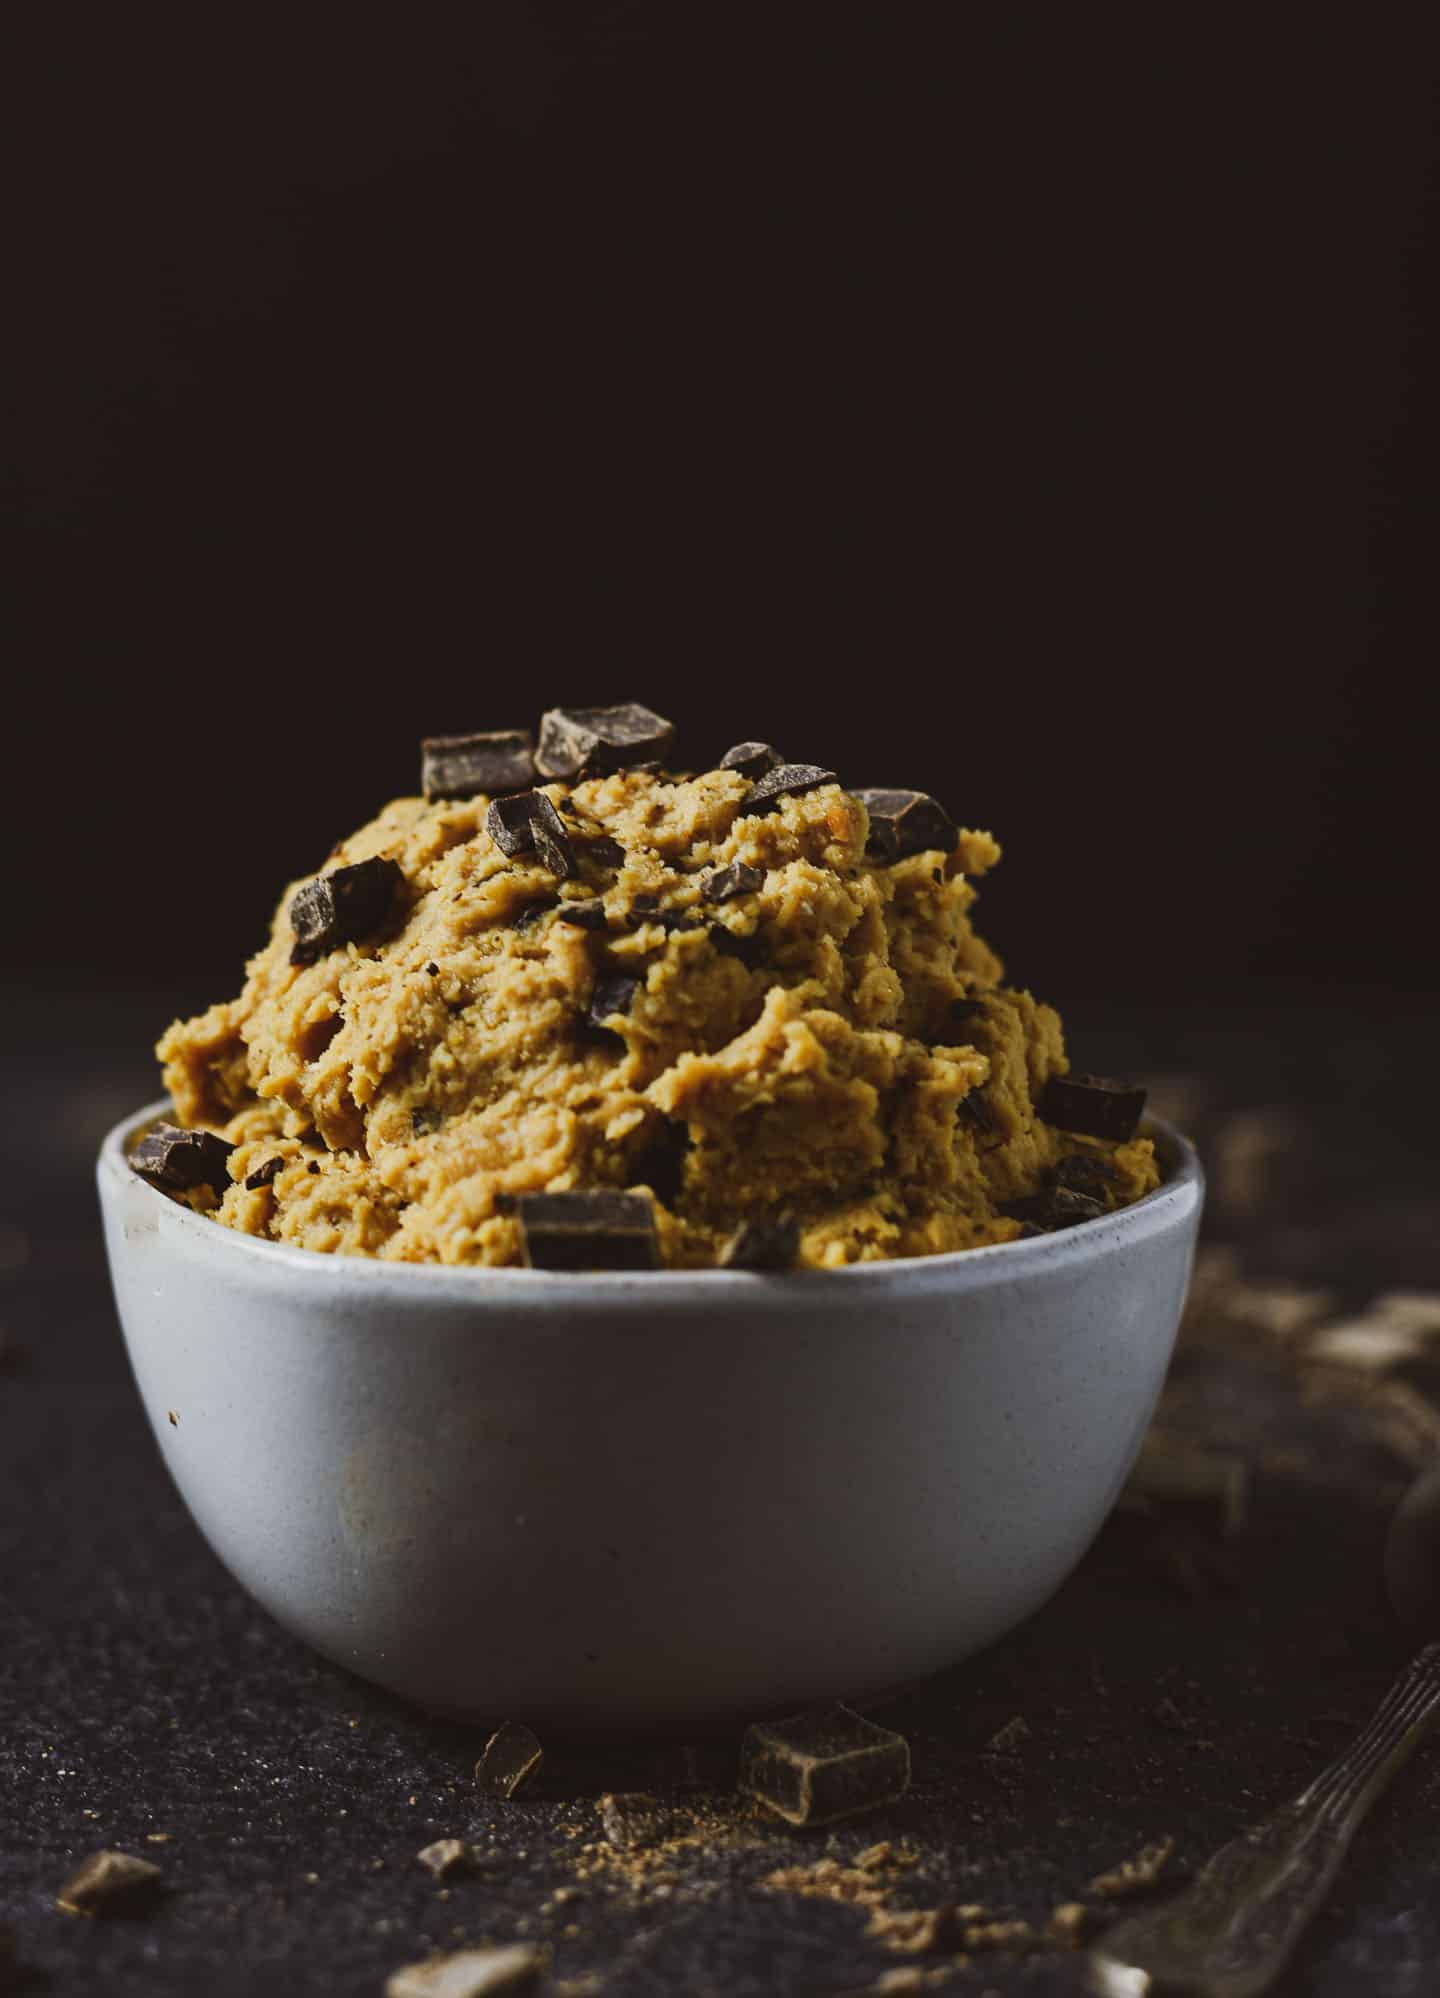 This Vegan Edible Cookie Dough is healthy, delicious, and so easy to make. All you need are a few simple ingredients to make this incredibly decadent dessert. It's naturally gluten-free, dairy-free, and ready in 5 minutes.